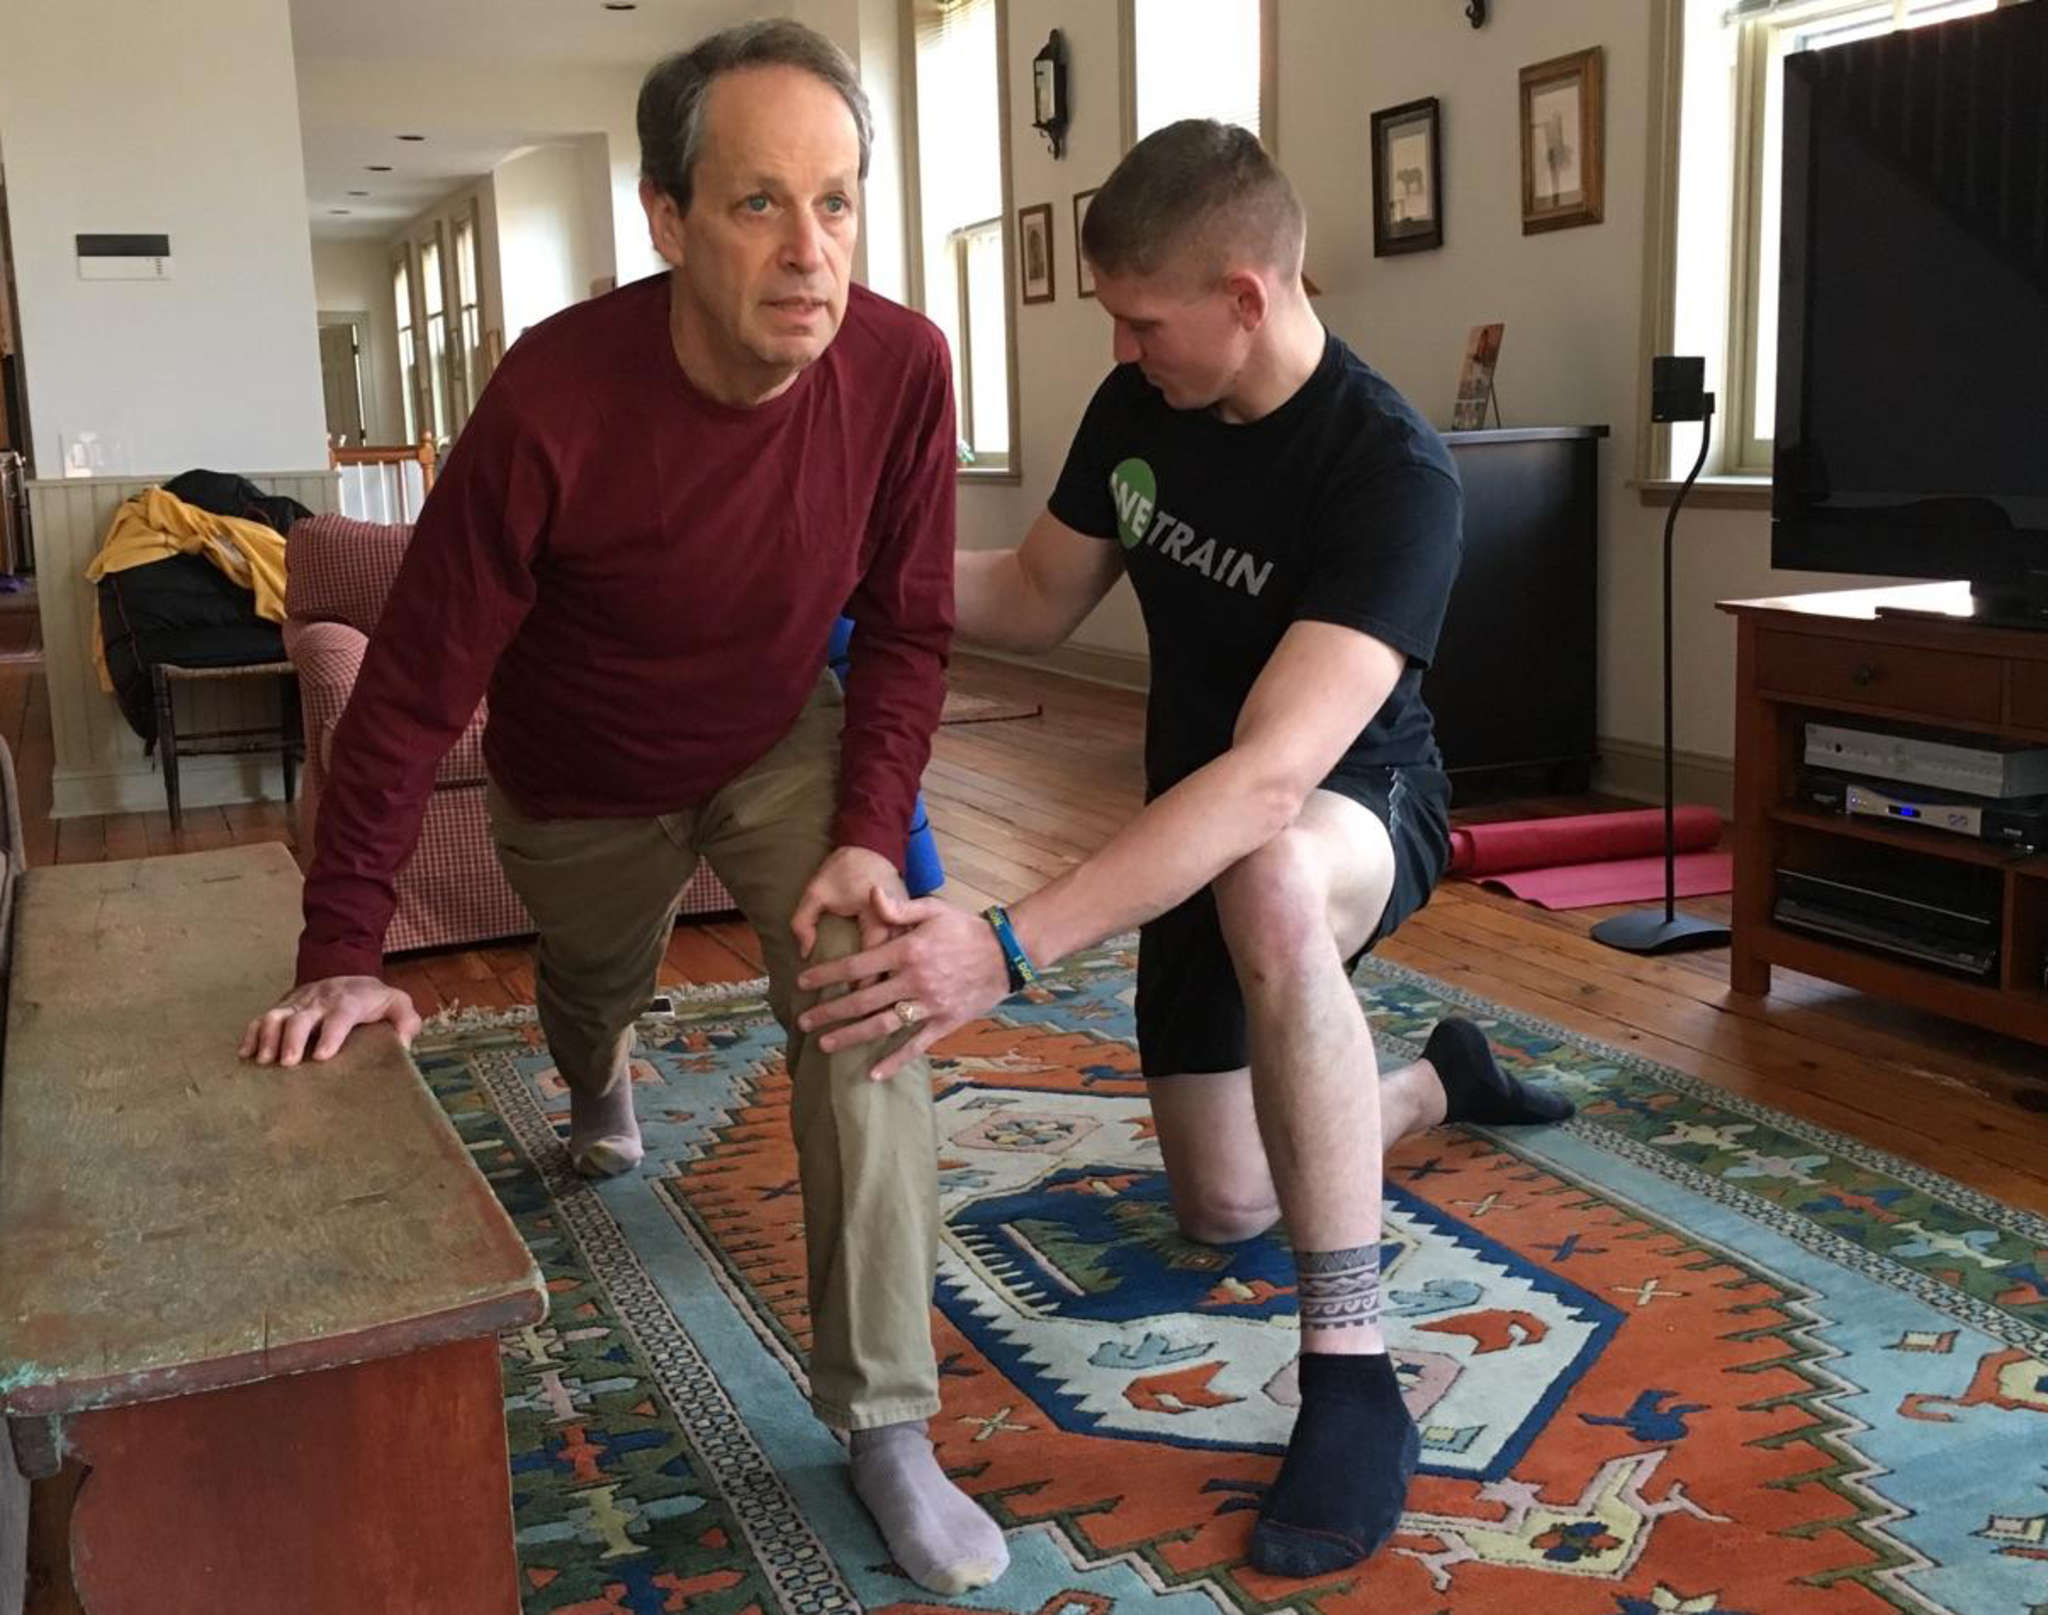 WeTrain´s Mitch Brudy puts reporter Jonathan Takiff through his paces. WeTrain, based in Philadelphia, offers personal trainers on call through the company´s mobile app and available anywhere.